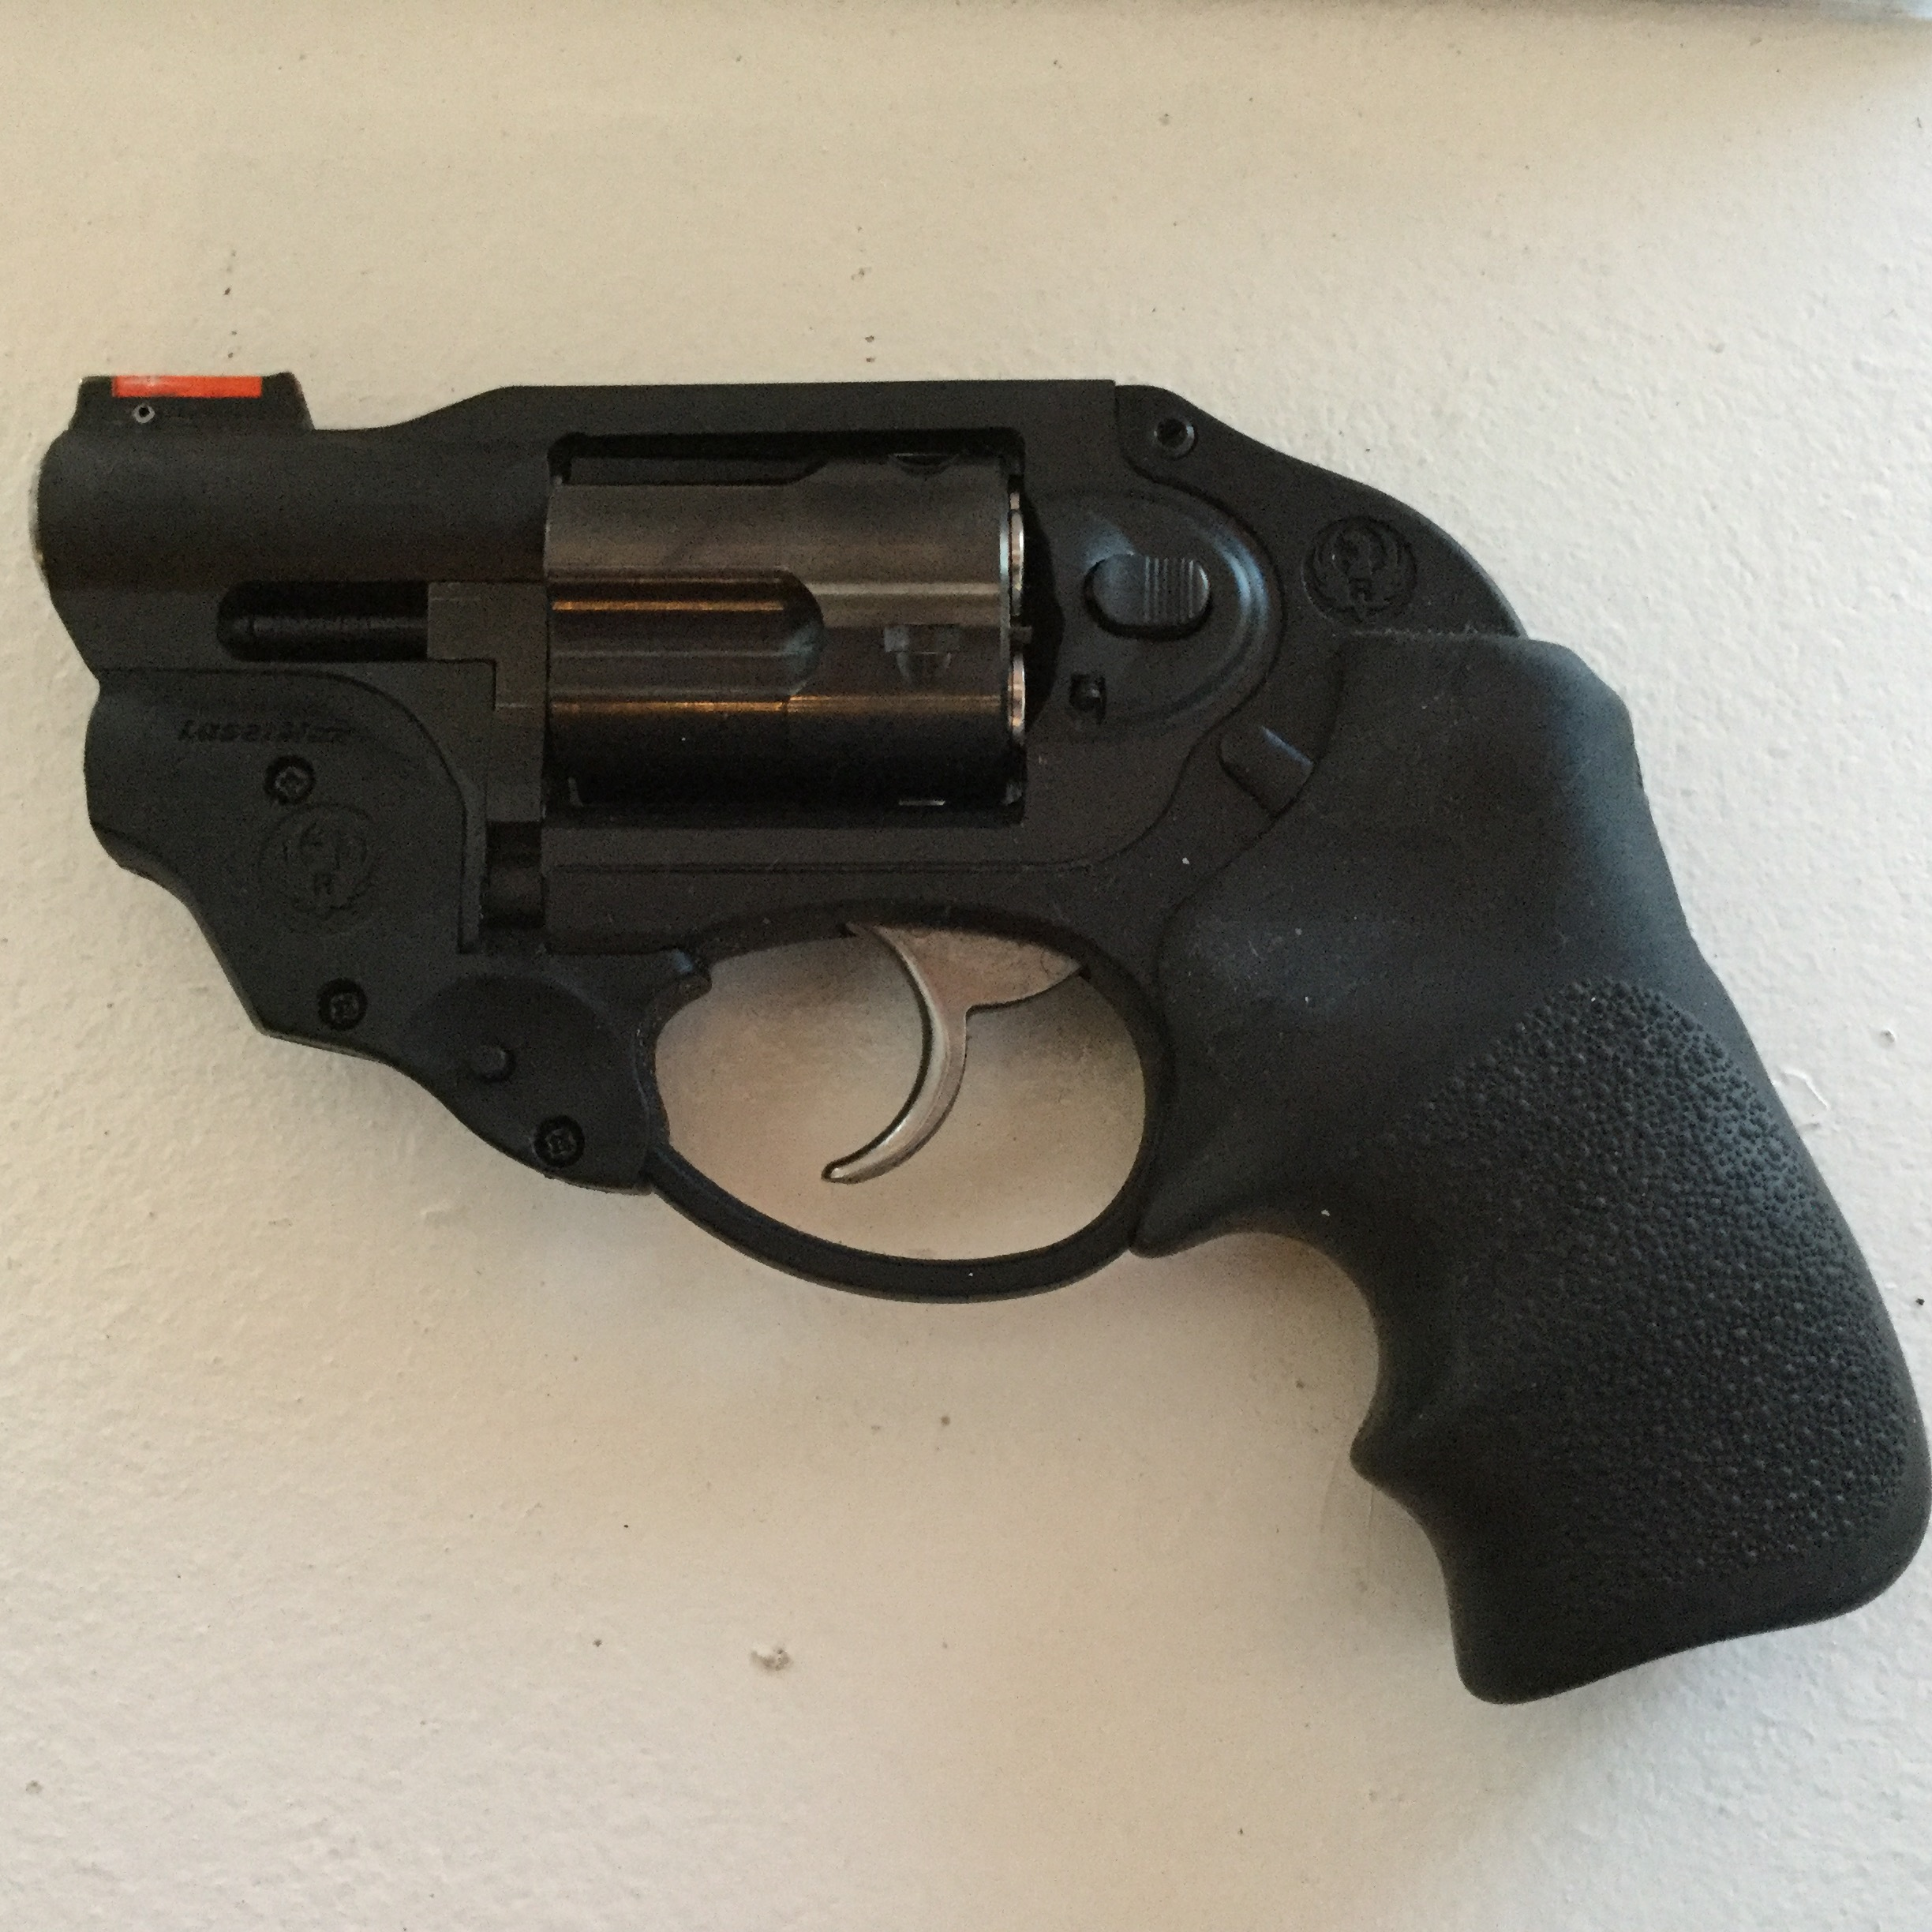 The LCR 9mm and why it will be one of two pocket guns-image.jpg